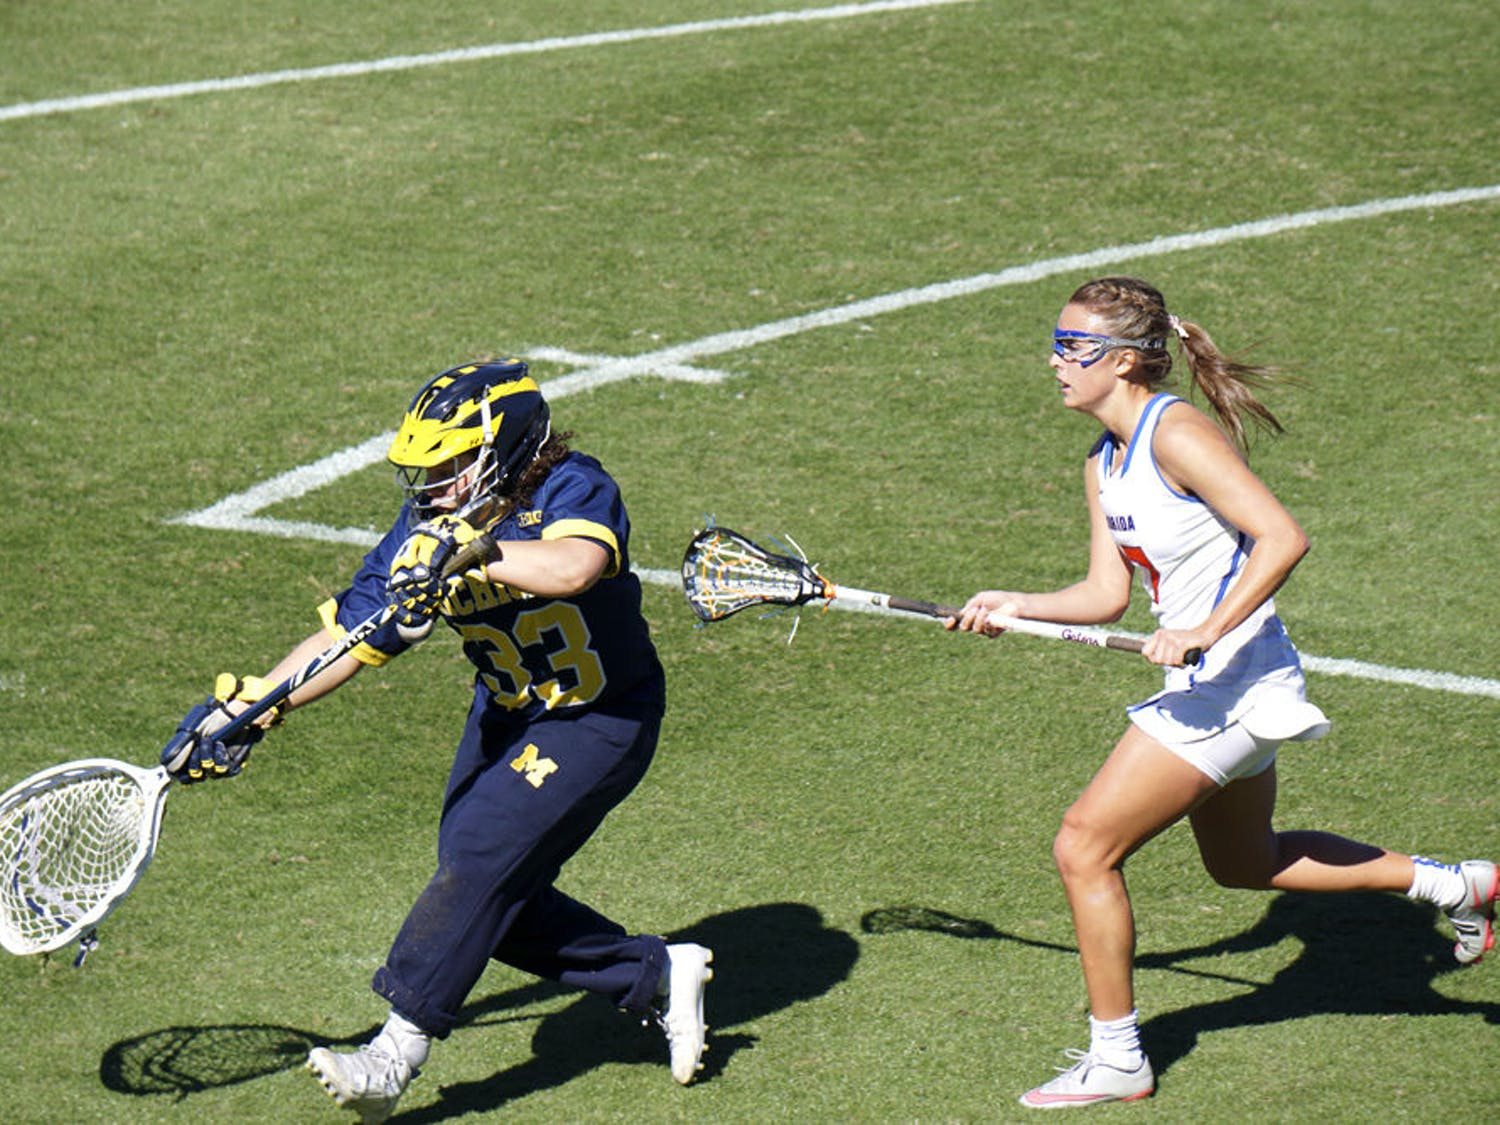 UF's Mollie Stevens attempts to make a play on the ball during Florida's 12-11 win over Michigan on Feb. 13, 2016, at Donald R. Dizney Stadium.